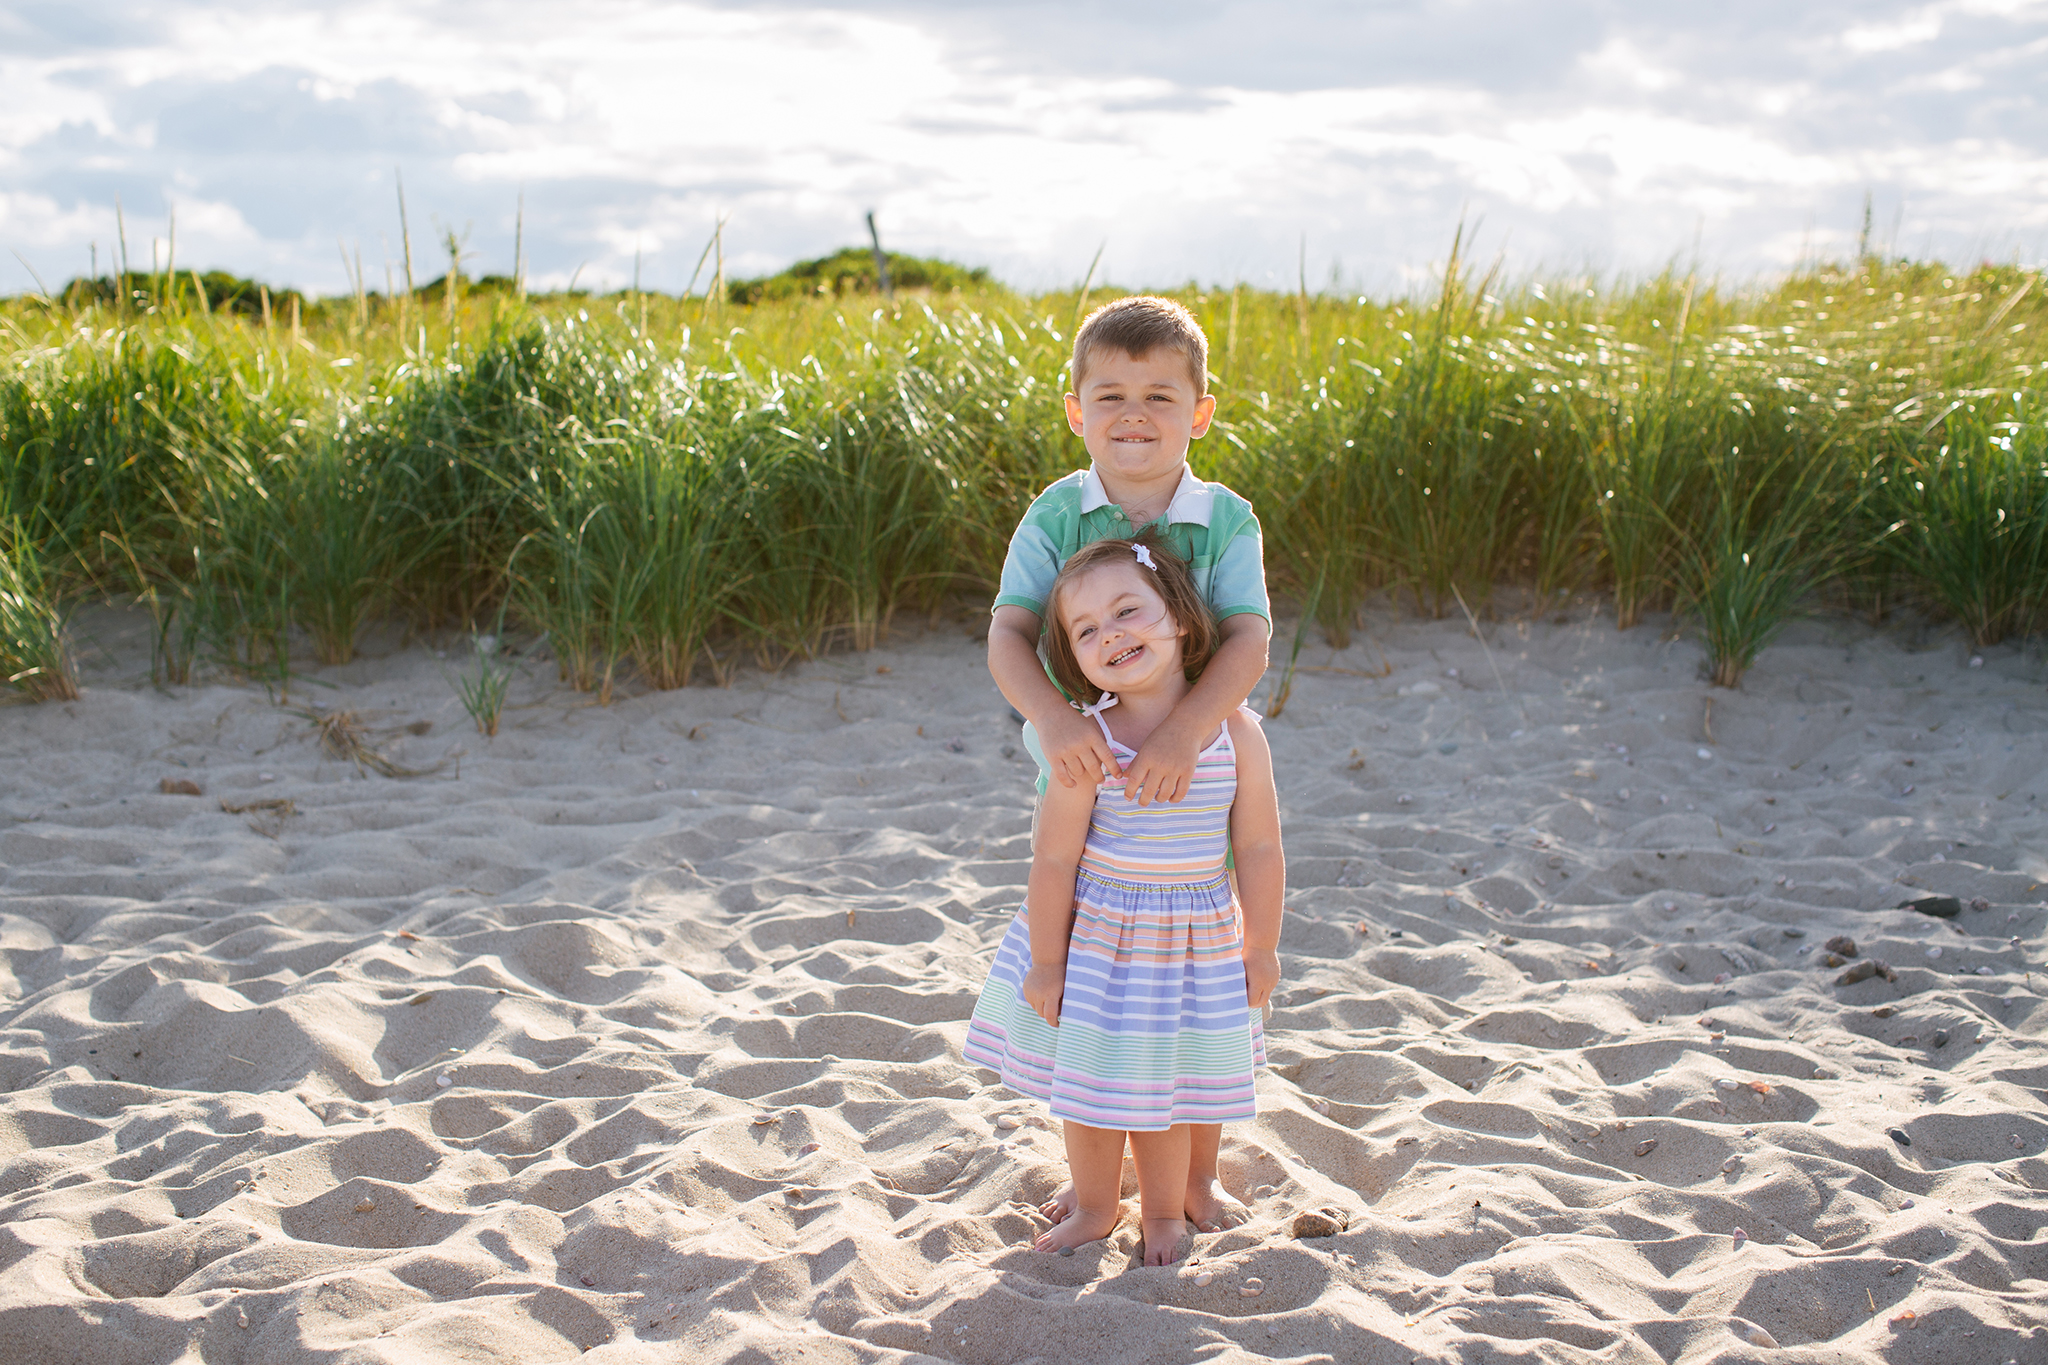 photography by mallory - lifestyle family photographer.jpg